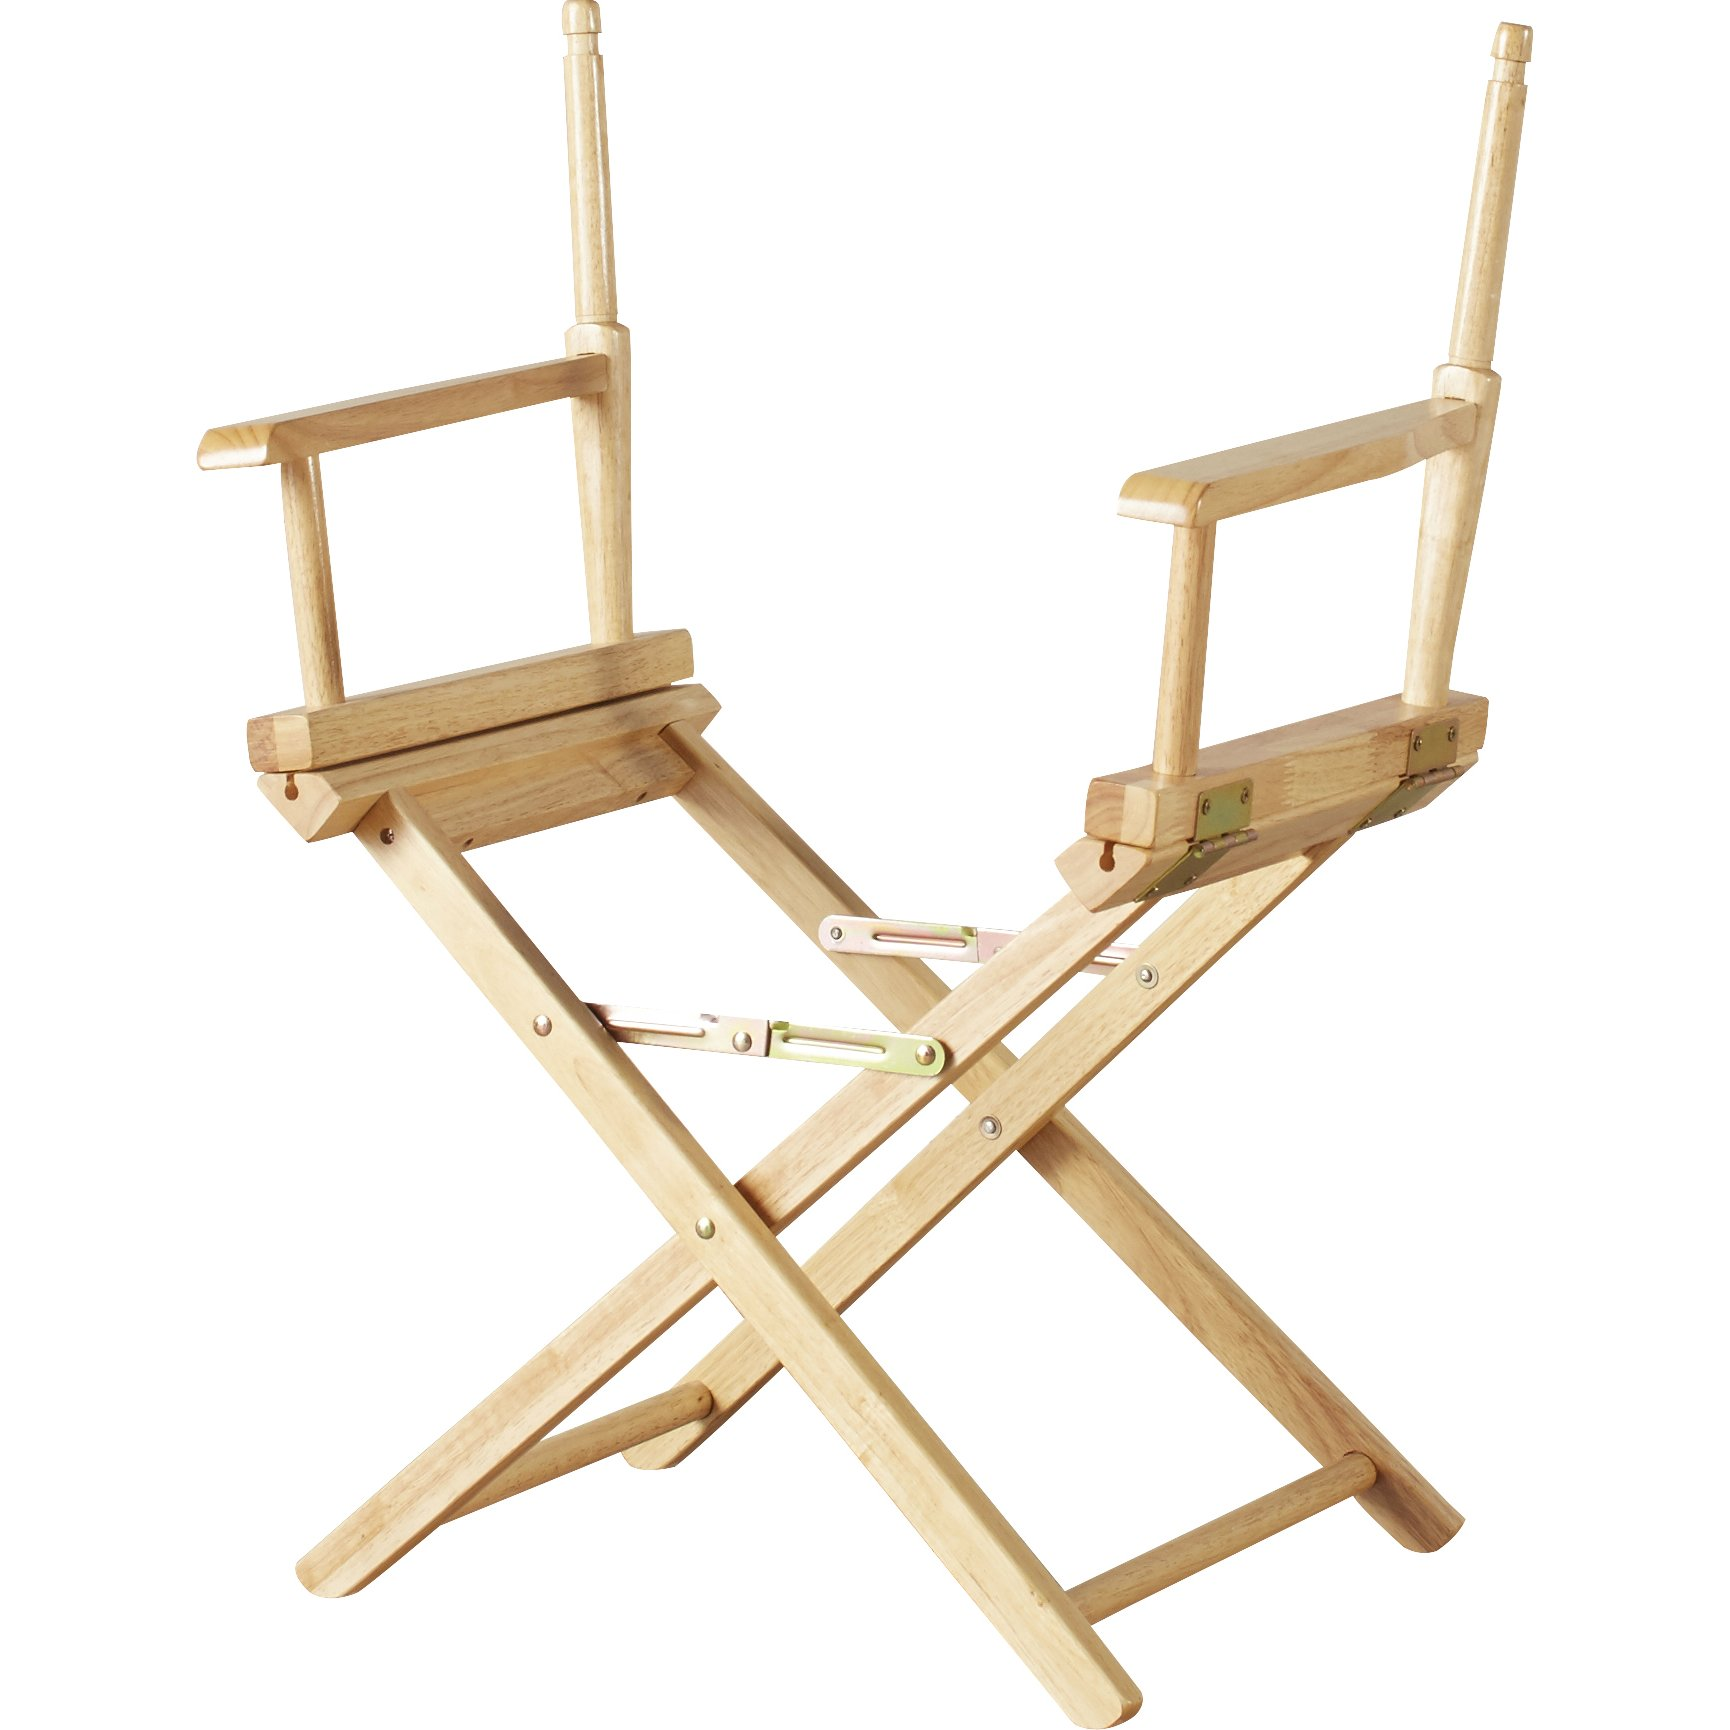 Attractive Directors Chair Replacement Canvas for Best Director Chair Ideas: Gold Medal Directors Chair | Director Chairs Target | Directors Chair Replacement Canvas